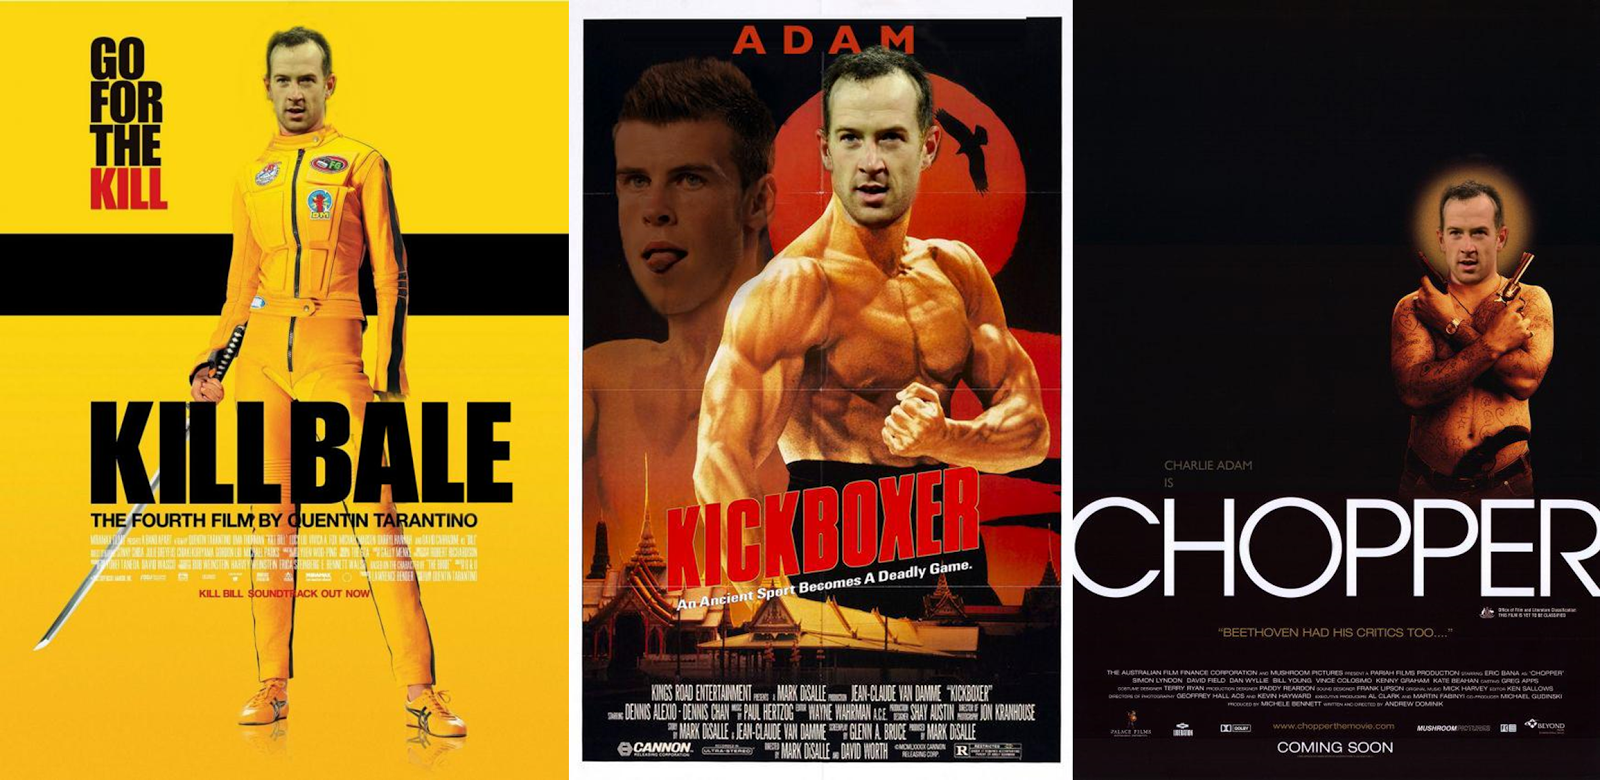 Kill Bale, Kickboxer, Chopper, Charlie Adam, Gareth Bale, injury, funny, film poster, movie poster. meme, Liverpool, Tottenham